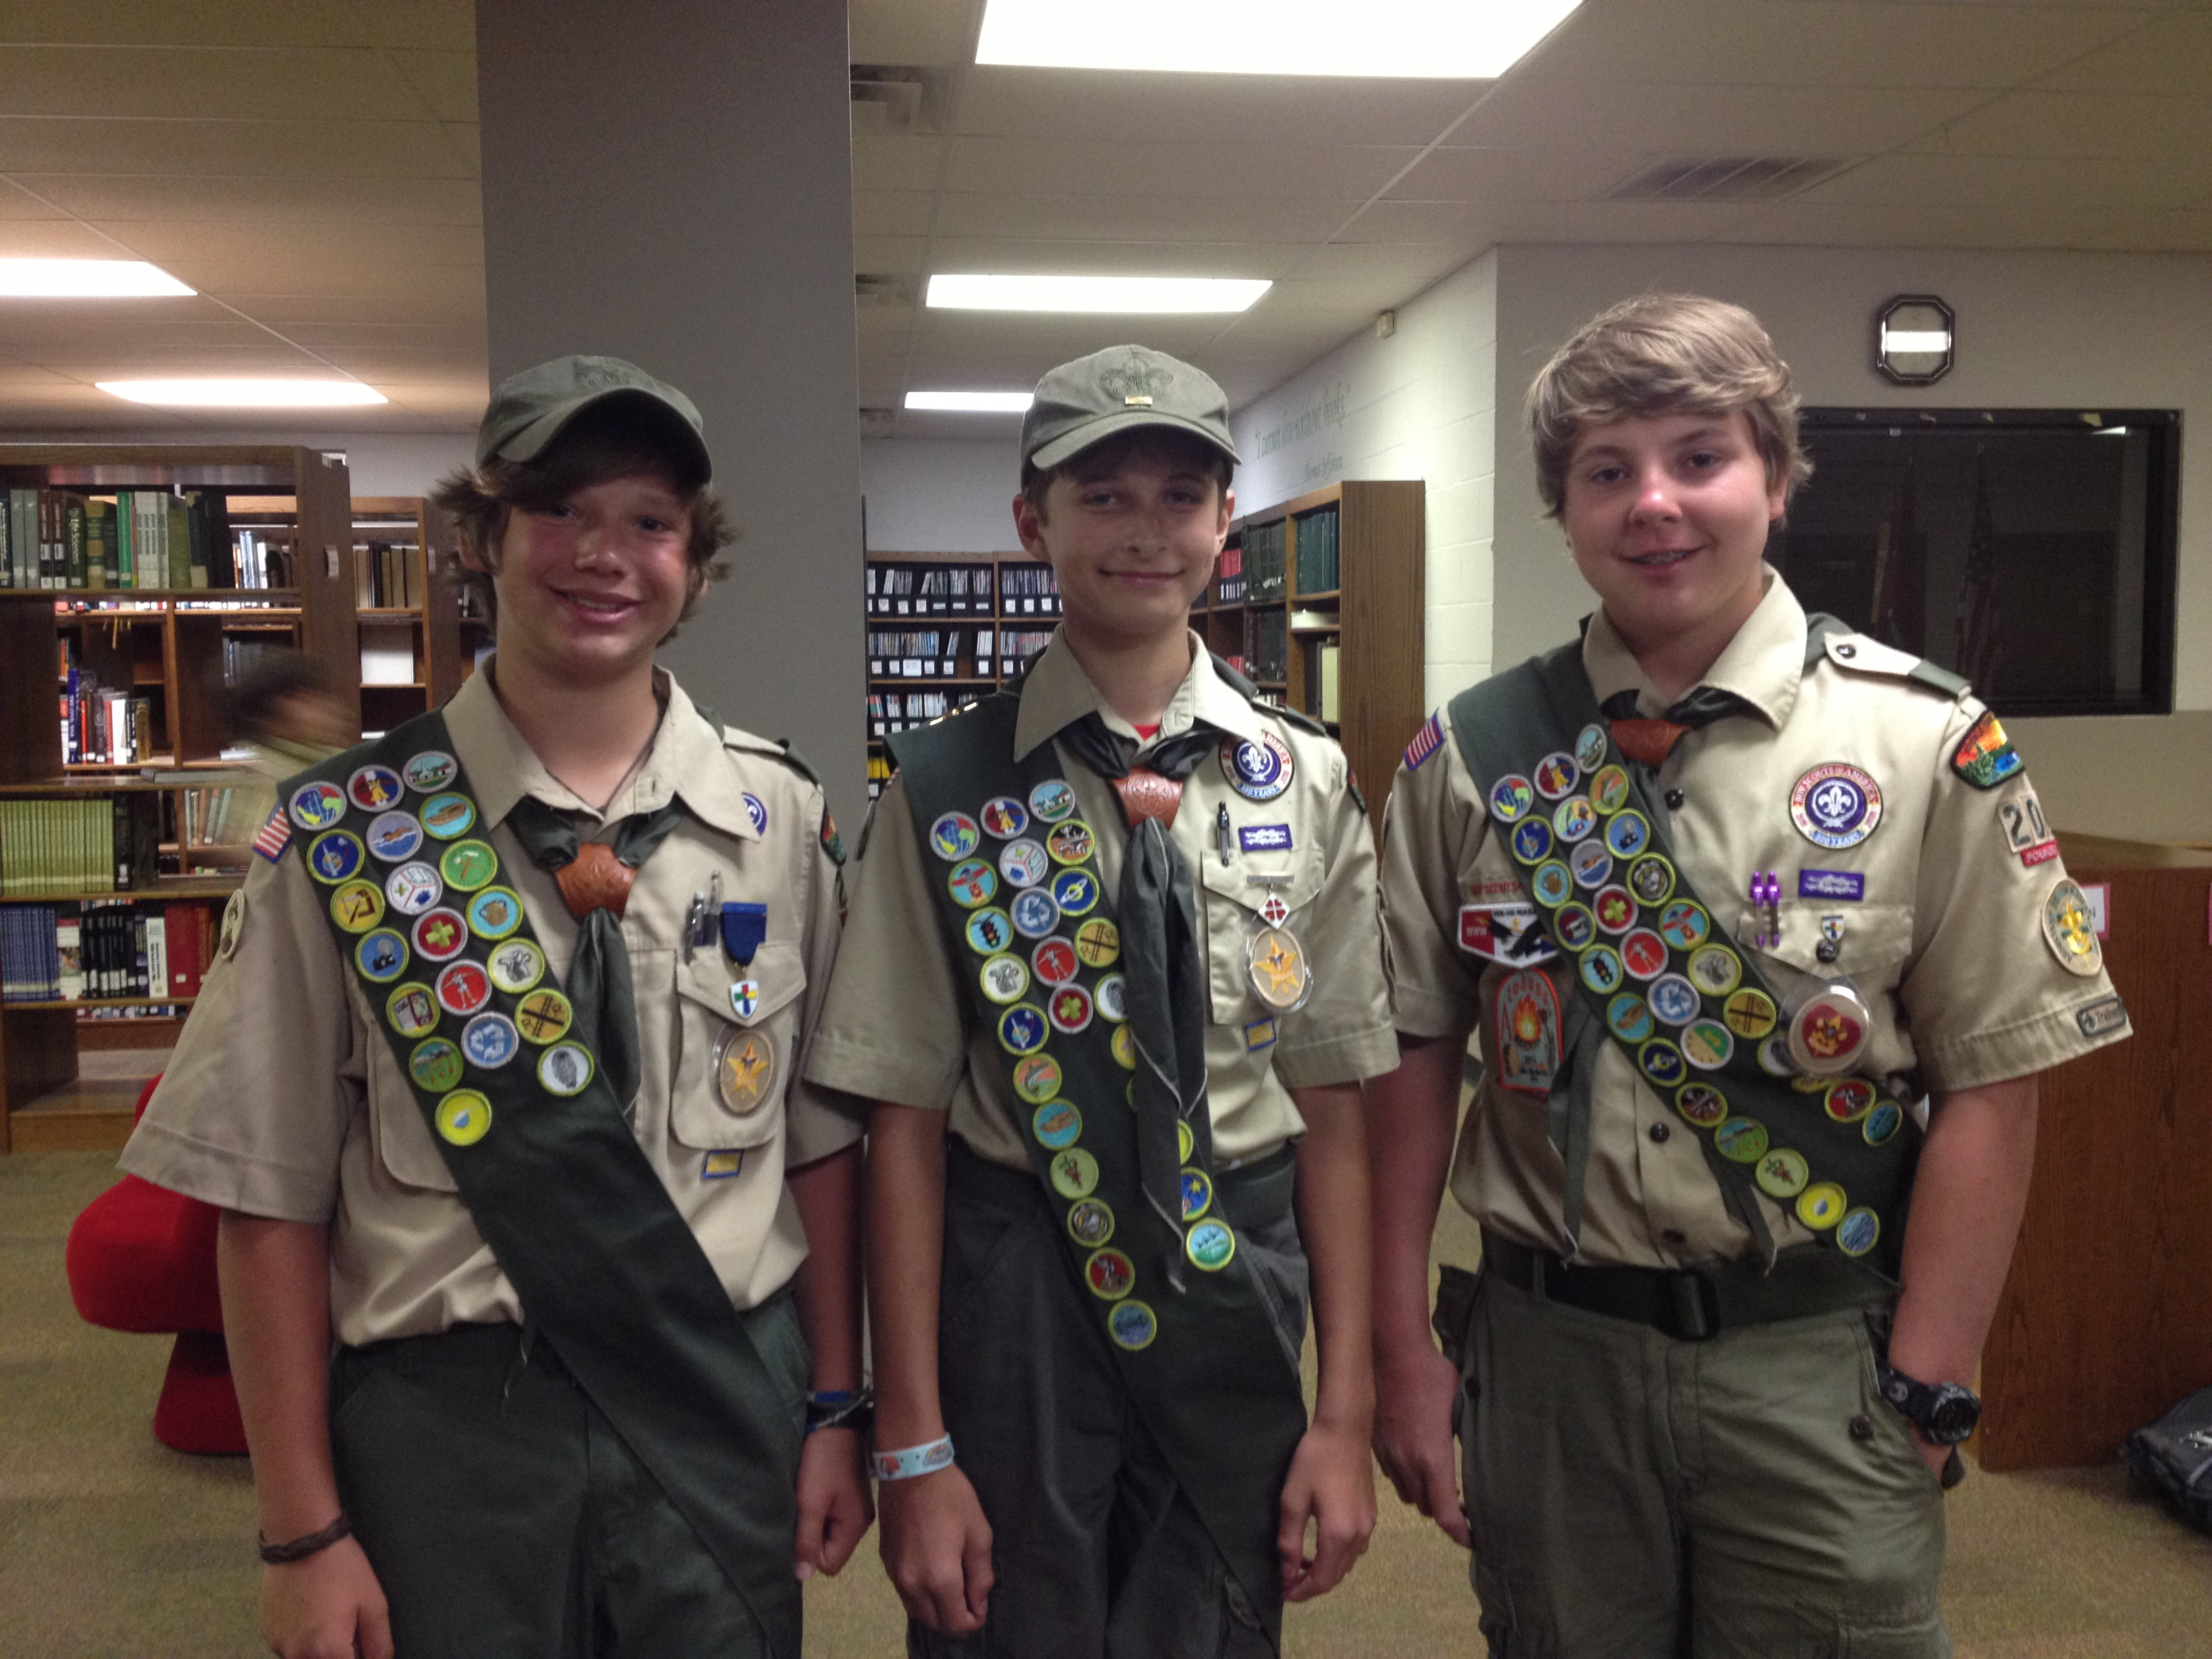 Life scouts from troop 206 active during summer fcs commanders blog